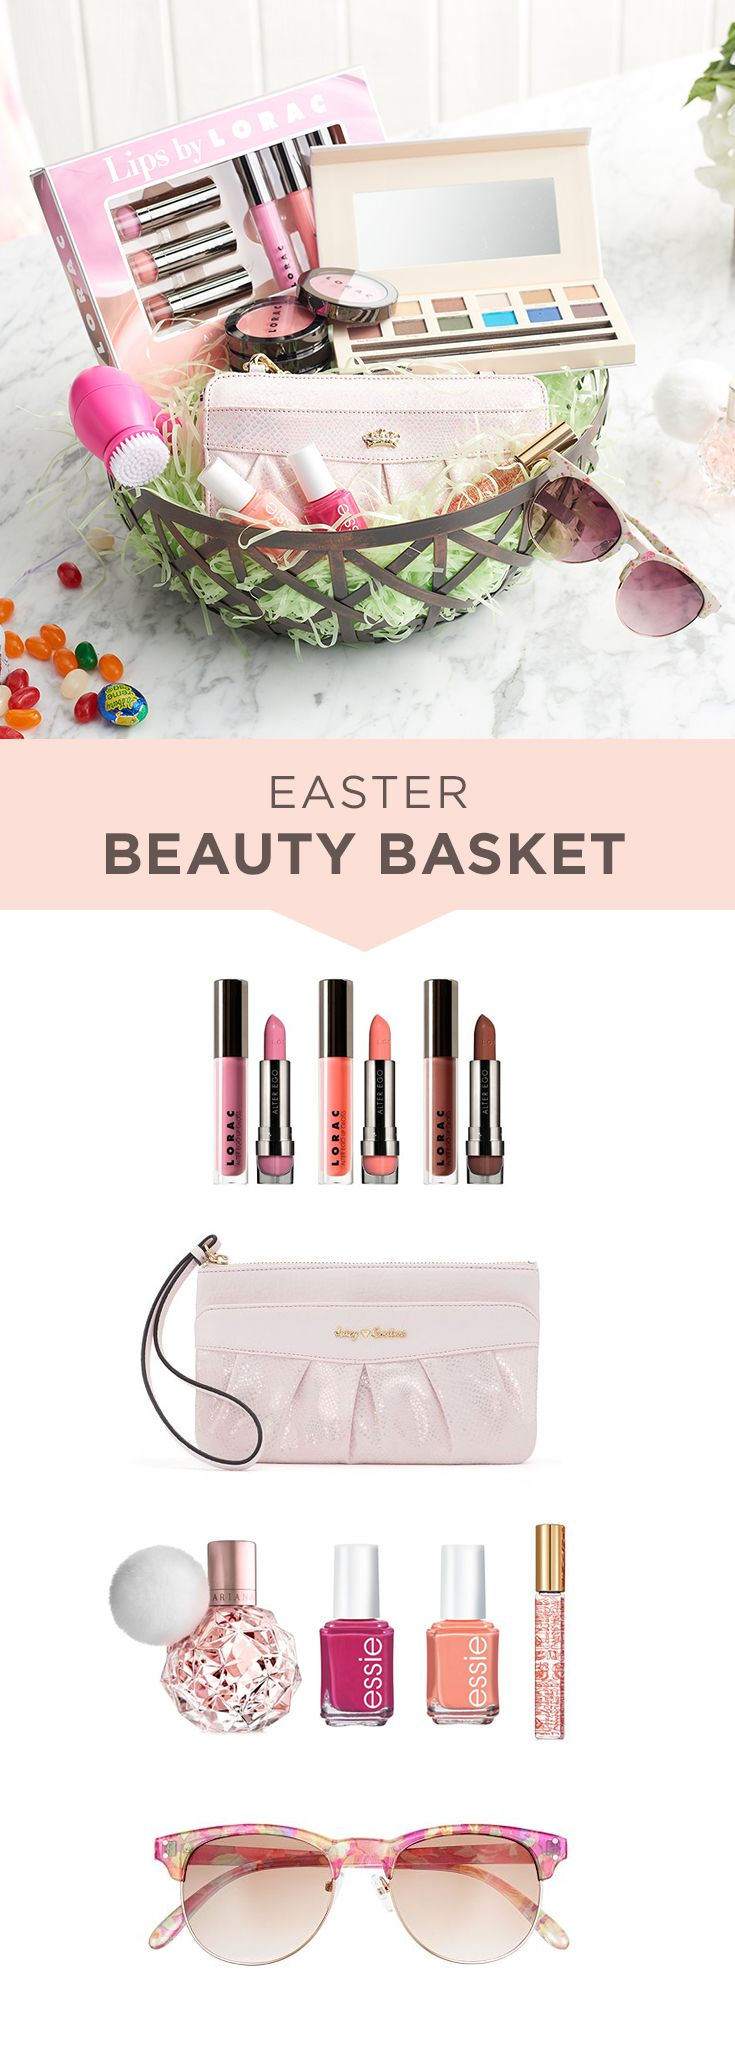 Put a pretty spin on the classic Easter basket with a beauty product focus. Start with a SONOMA Goods for Life decorative basket and pad with paper grass. Then fill with an array of beauty products including LORAC lipstick collection, essie nail polish and Coach Poppy perfume. Top off the basket with a chic pair of sunglasses or mini wristlet from Juicy Couture. Get set for Easter at Kohl's.